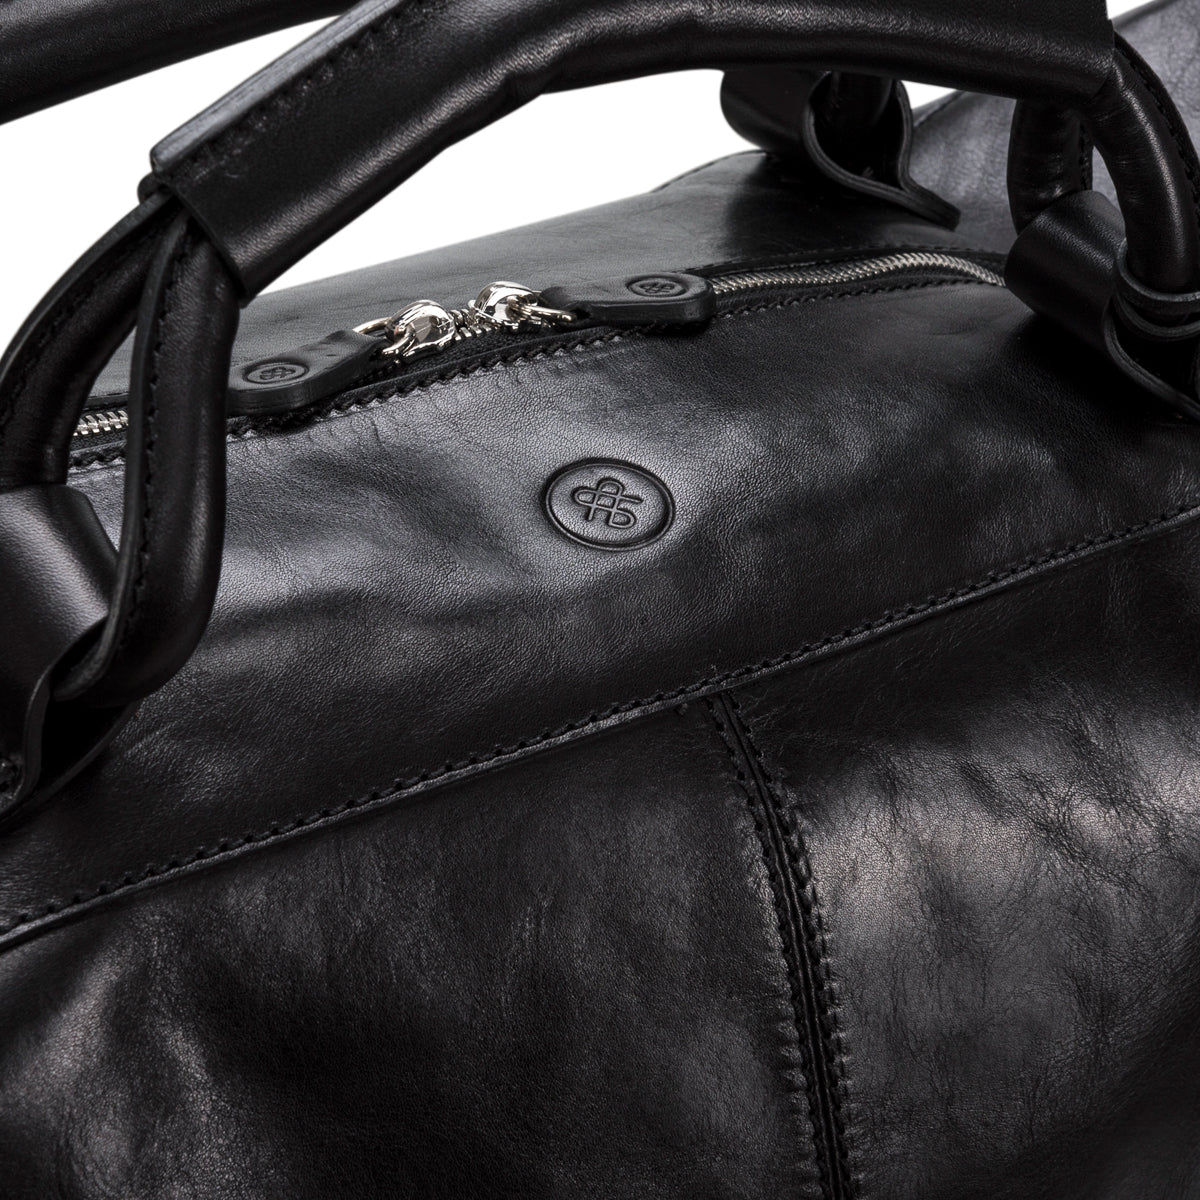 Image 6 of the 'Fabrizio' Black Veg-Tanned Leather Holdall